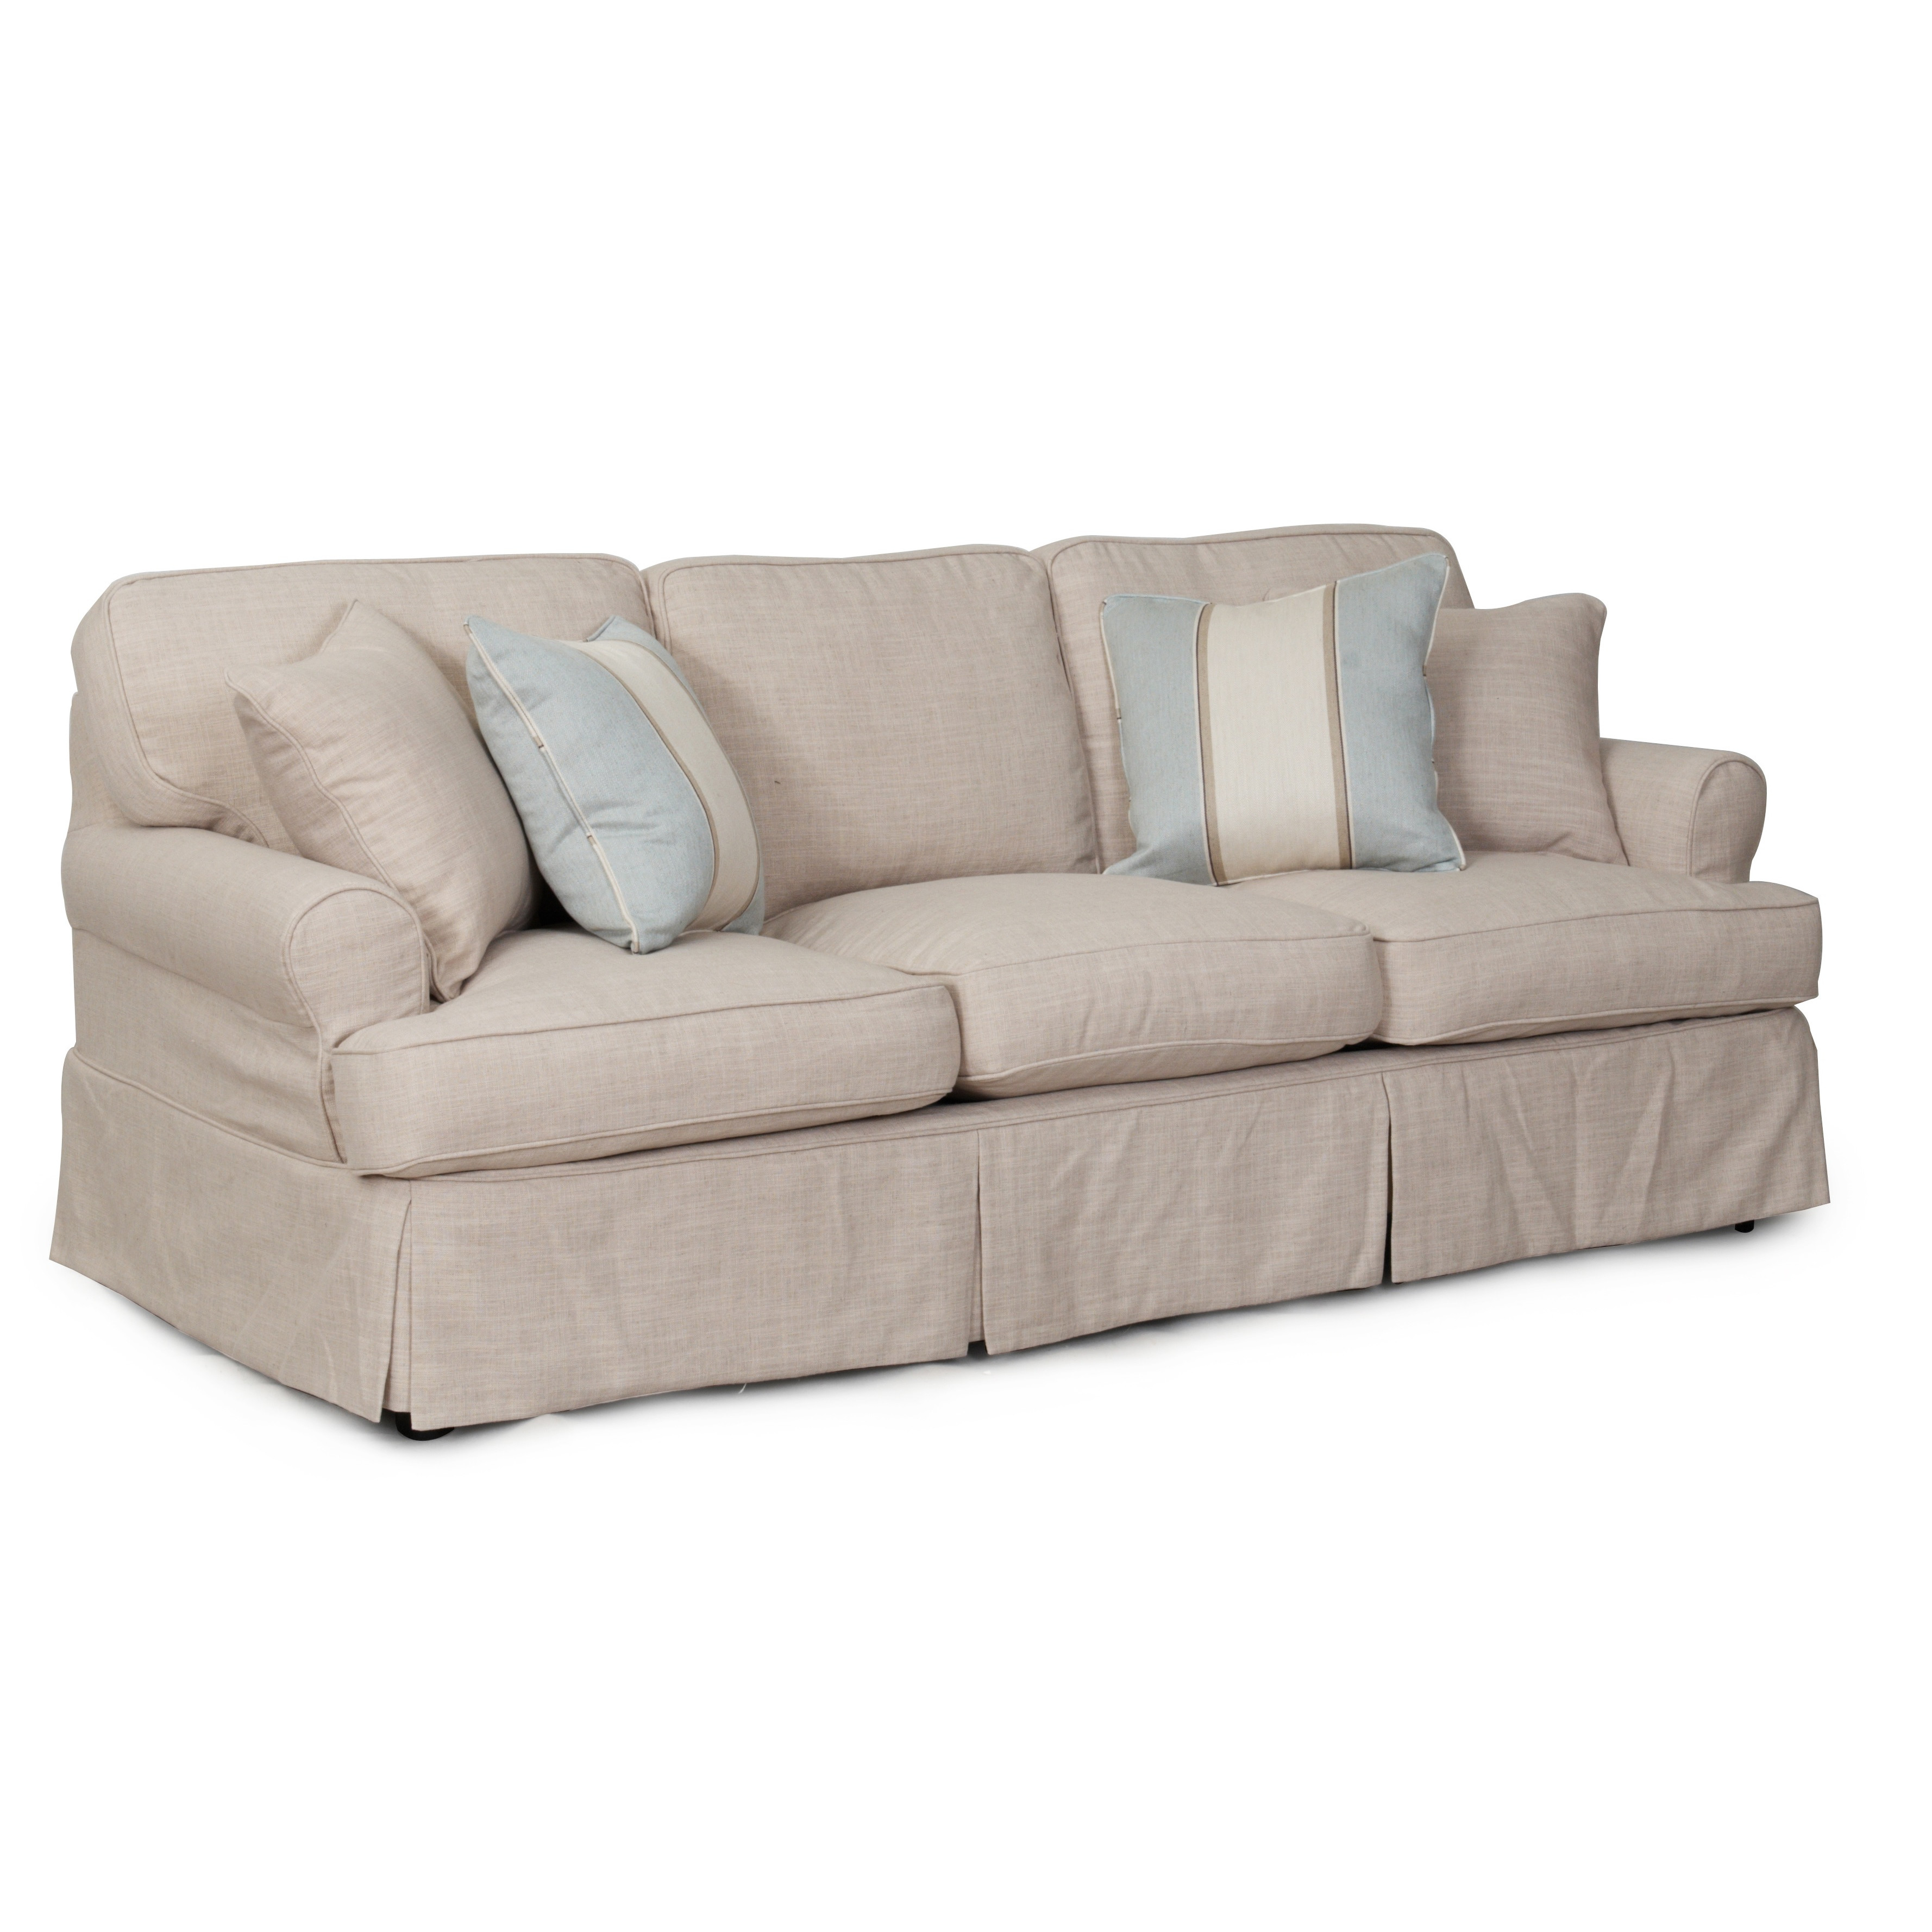 stylish slipcover sofa ikea picture-Best Slipcover sofa Ikea Concept